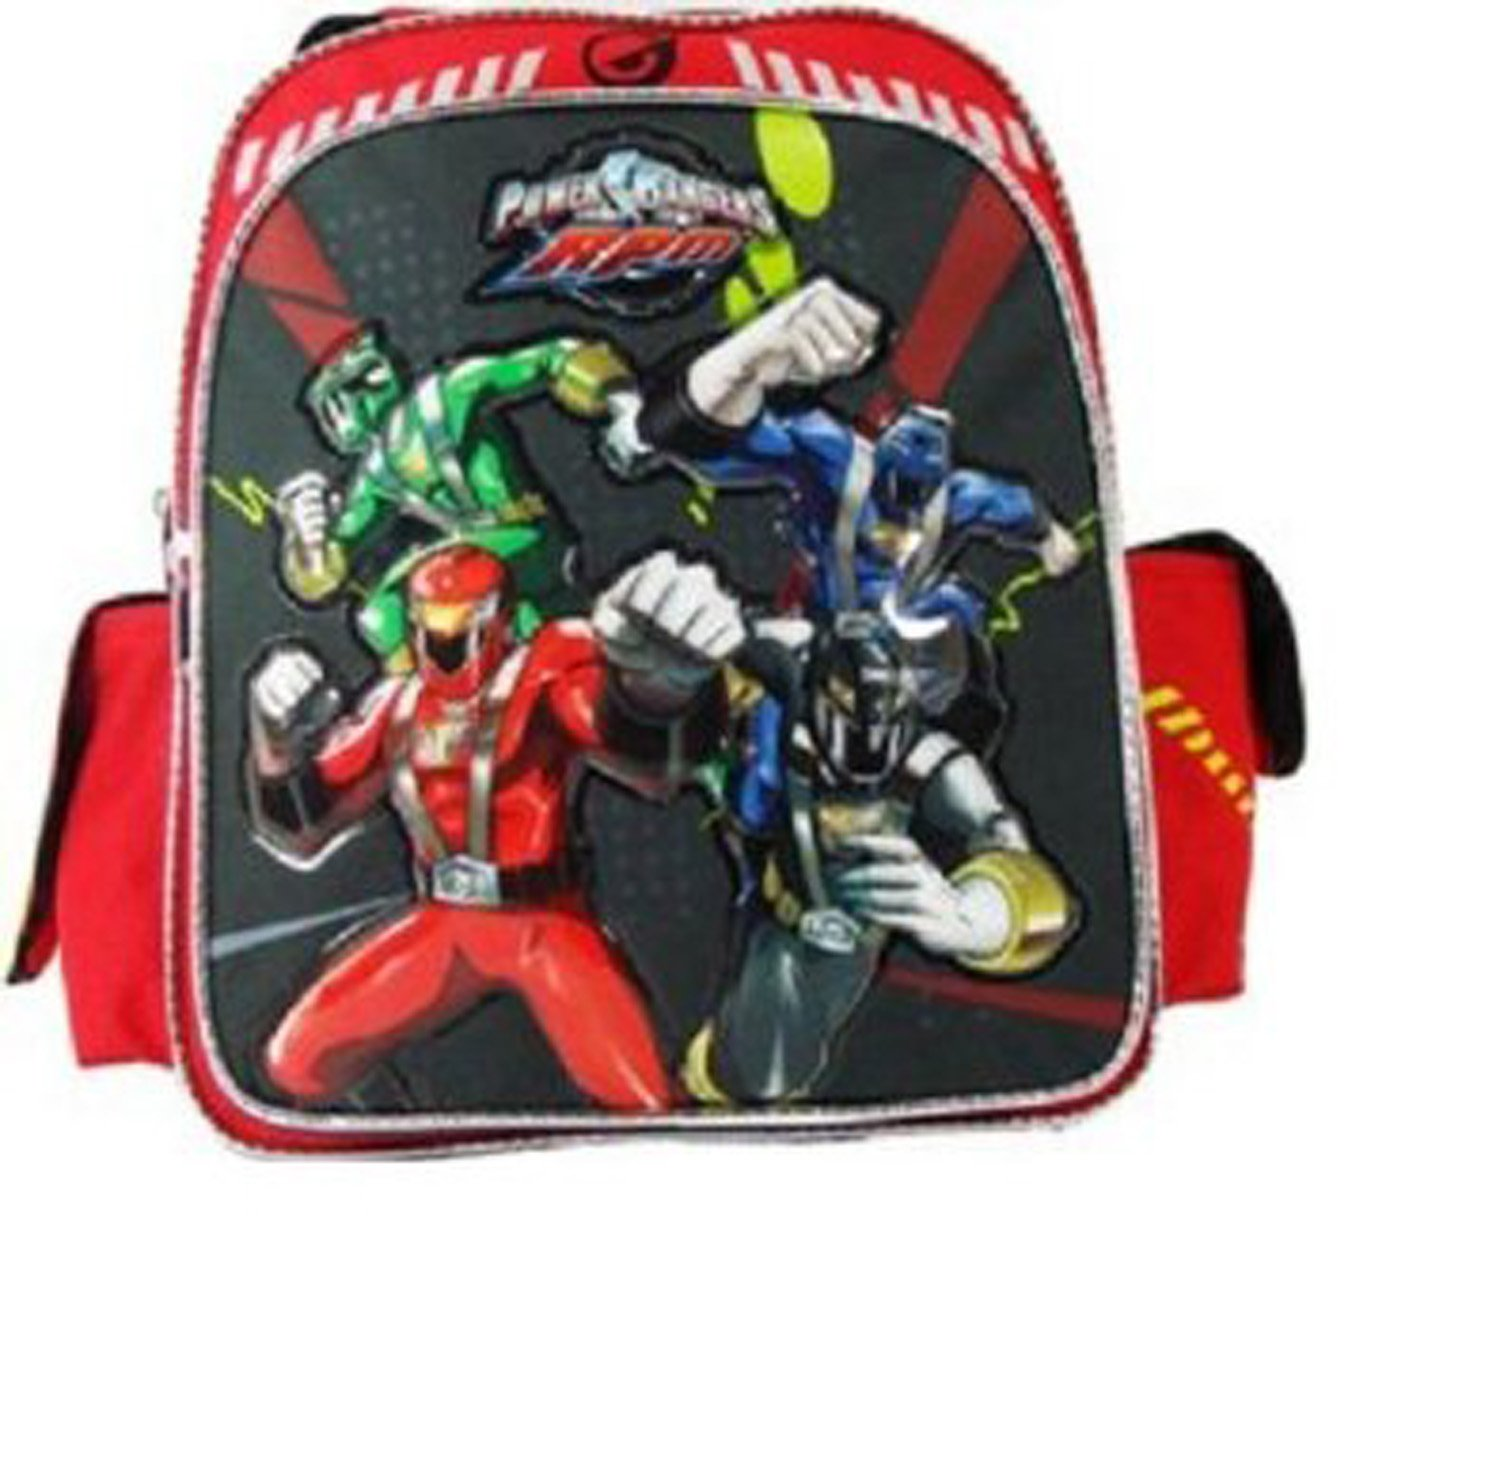 Small Backpack - Power Rangers RPM New School Book Bag Boys 386504   B002Y2OFGC